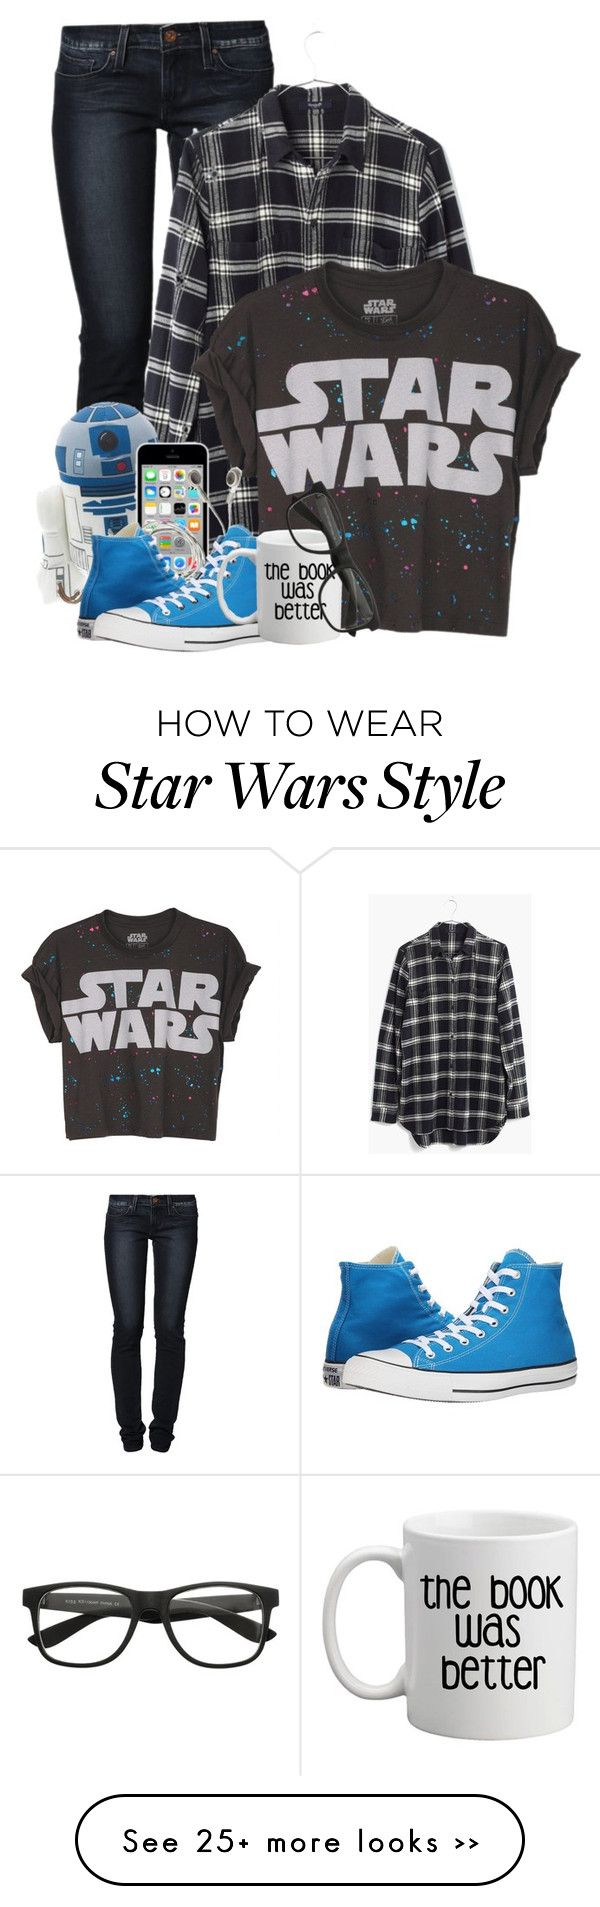 """""""Dare to be a Dork"""" by beautybear64 on Polyvore featuring moda, Levi's, Madewell y Converse                                                                                                                                                                                 Más"""